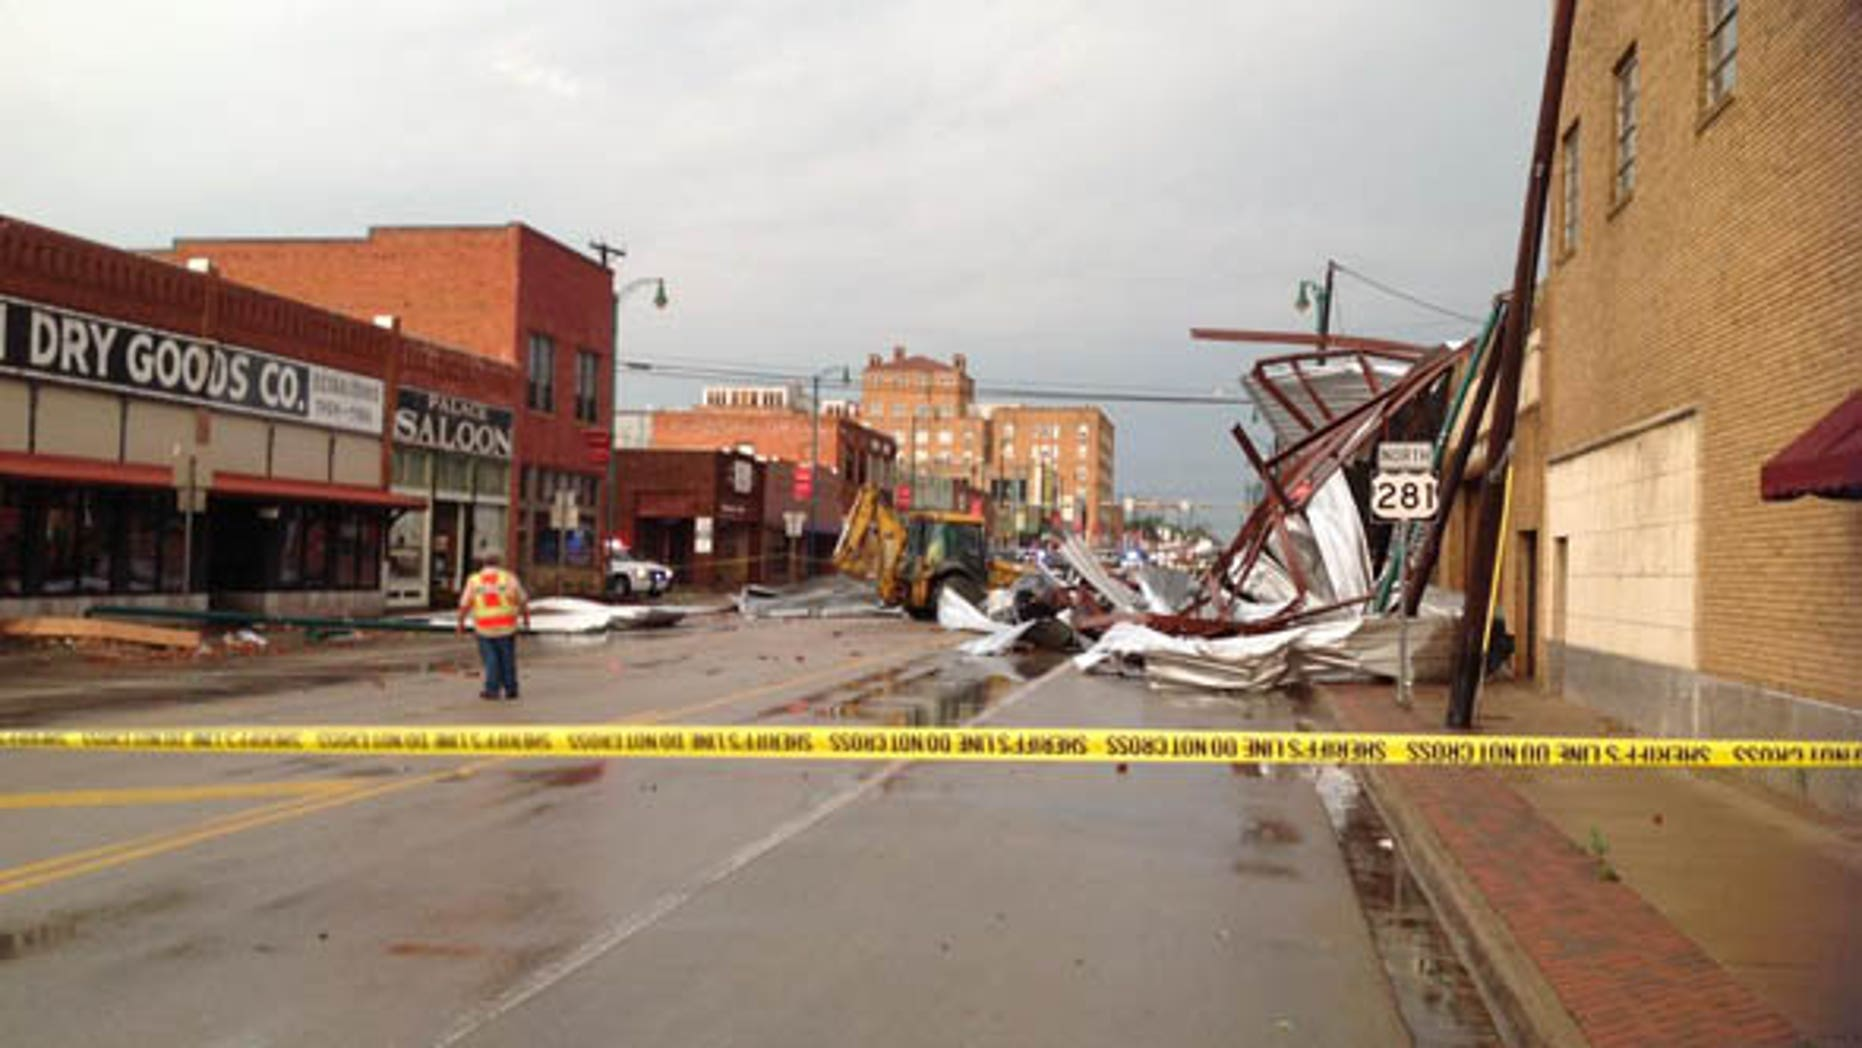 May 19, 2015: Emergency workers survey the damage after a tornado struck Mineral Falls, Texas. (Fox4News.com)